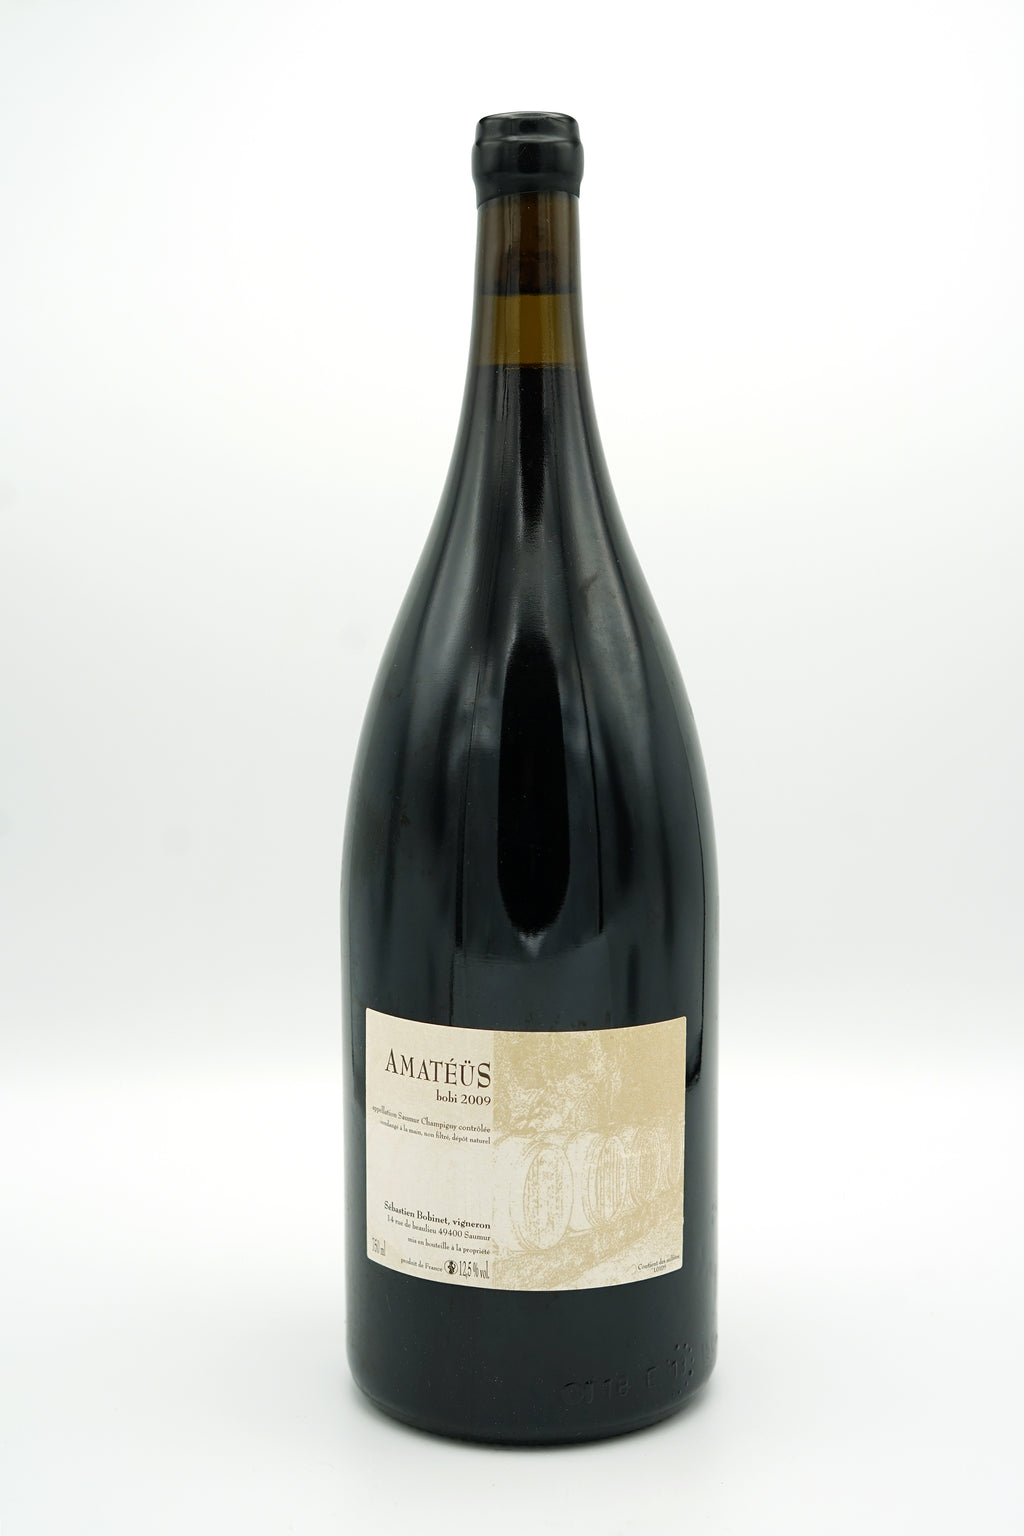 Amateus Bobi 2009 - Magnum - SOLD OUT